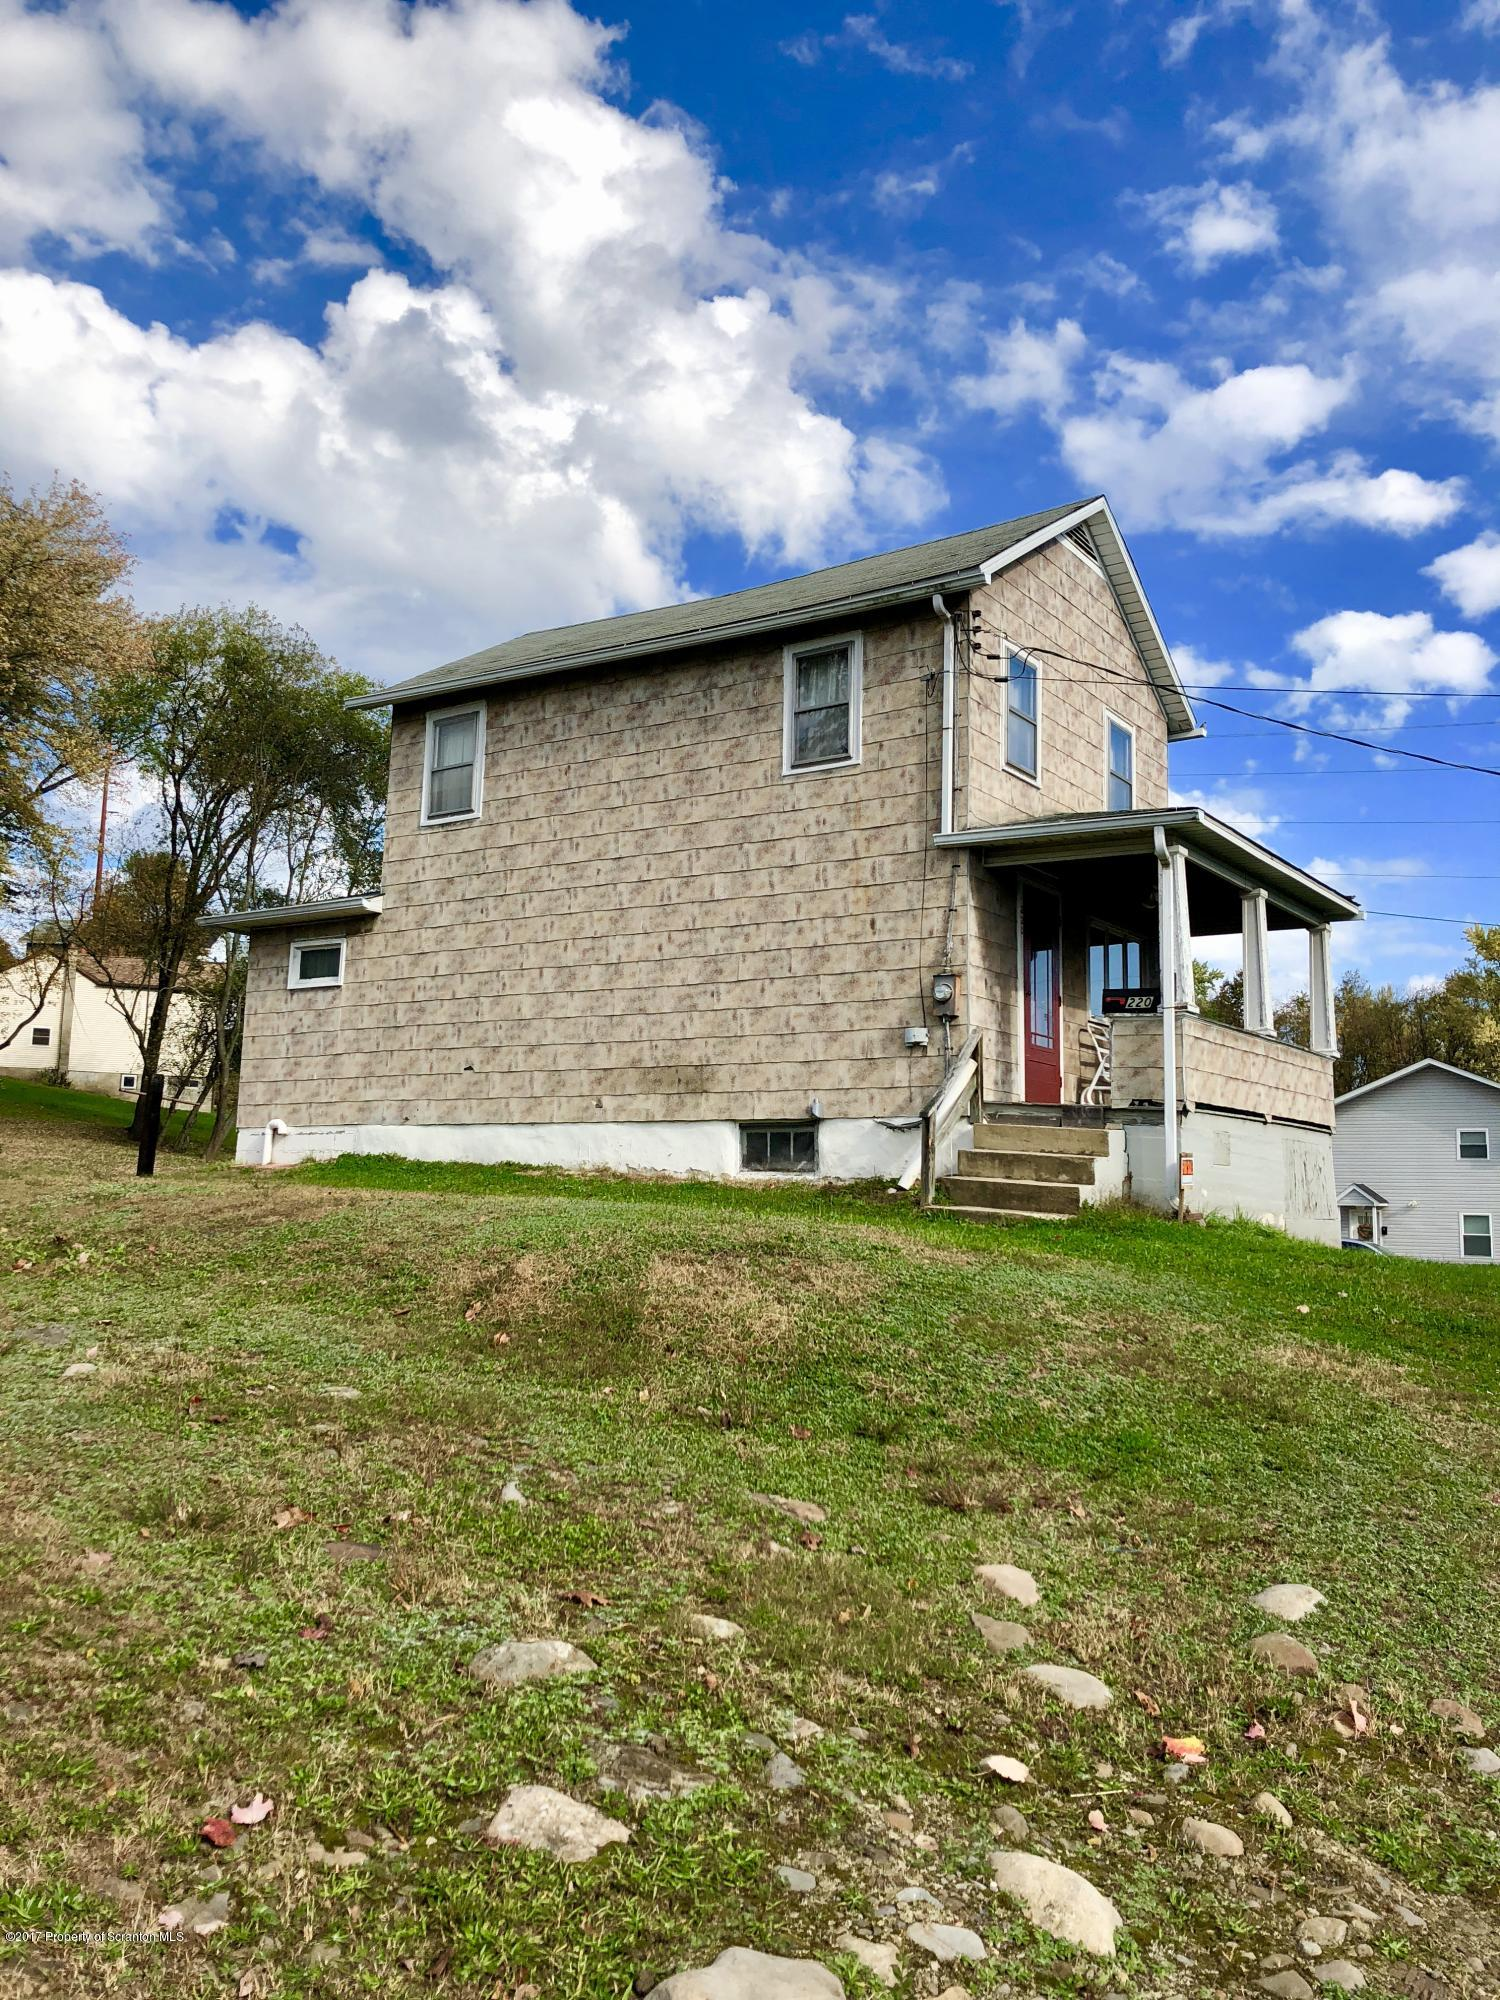 220 Wyalusing St, Old Forge, Pennsylvania 18518, 3 Bedrooms Bedrooms, 5 Rooms Rooms,1 BathroomBathrooms,Single Family,For Sale,Wyalusing,19-2307